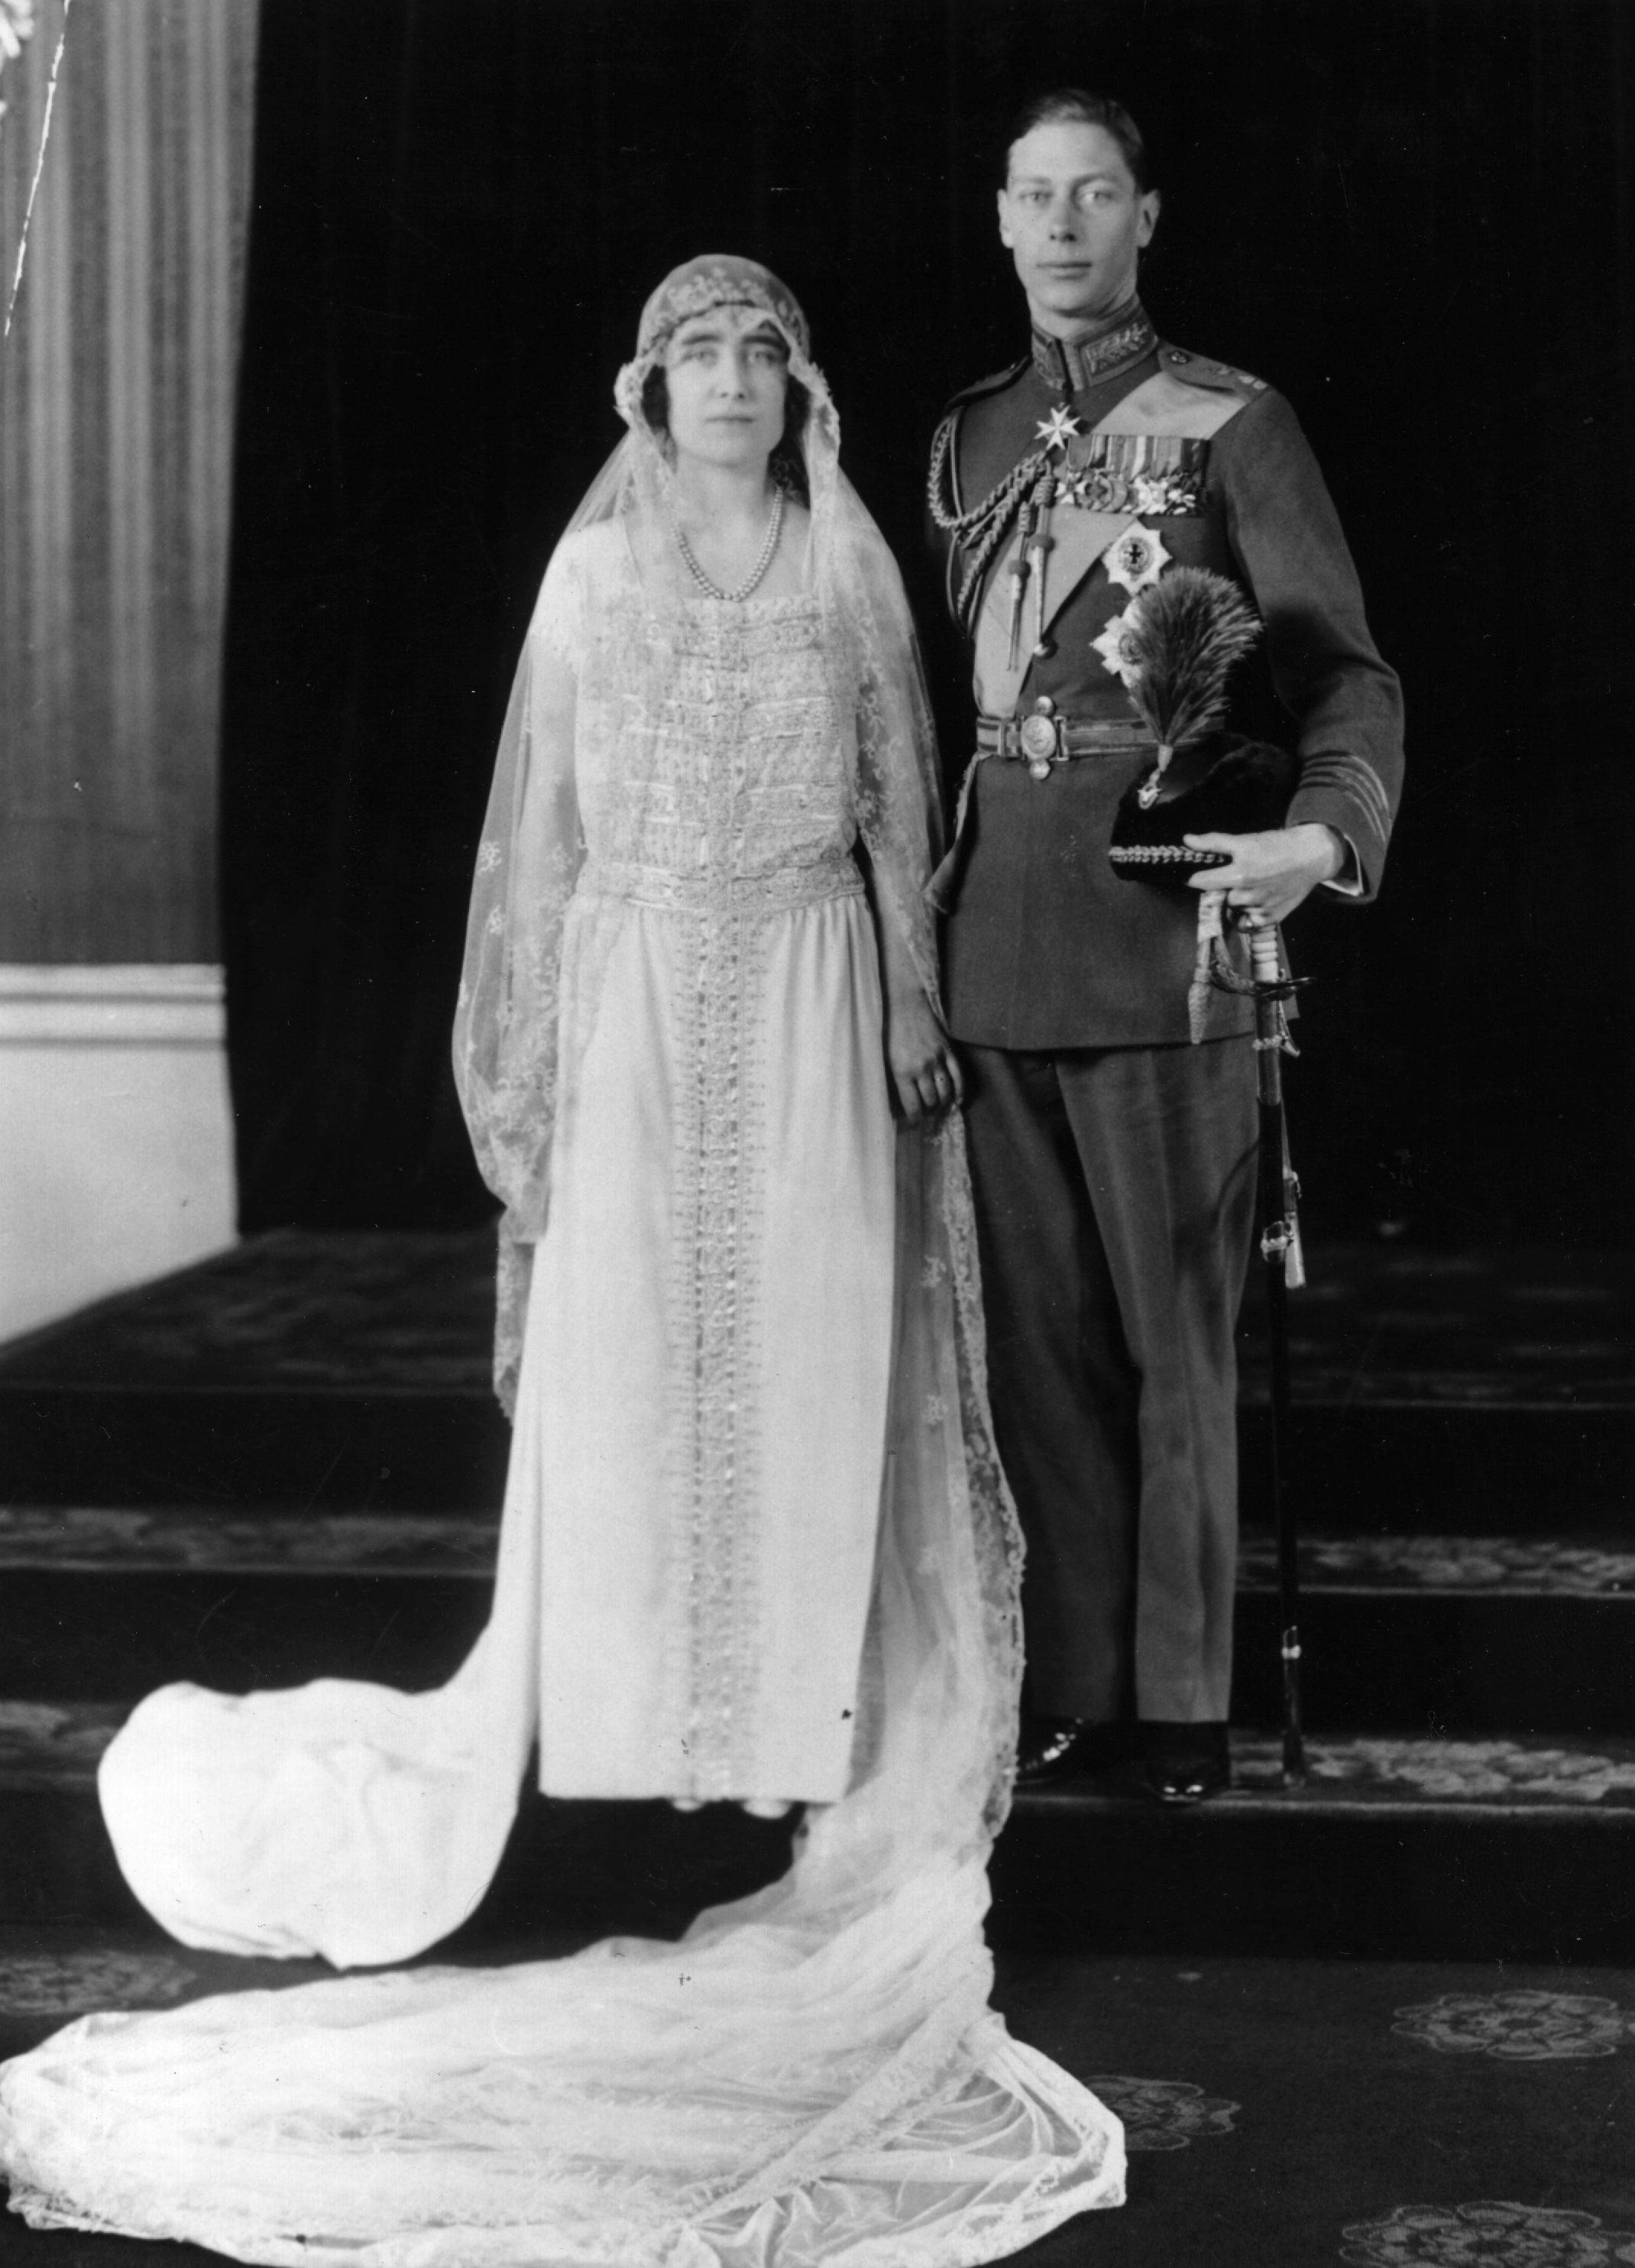 20 Facts About Queen Elizabeth II and Prince Philips Wedding